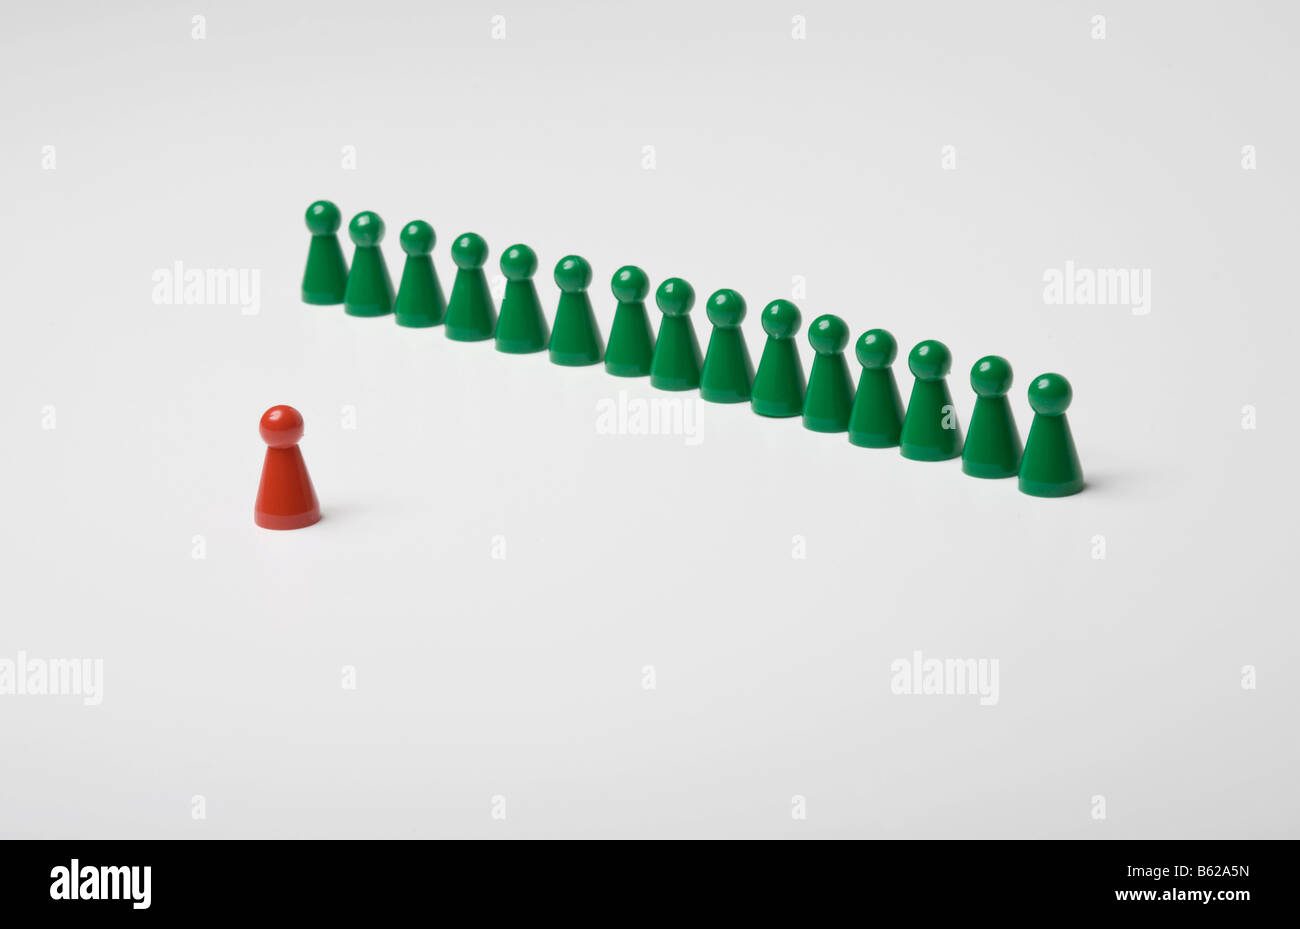 A row of green game pegs facing a single red one, symbol for holding a speech, coaching - Stock Image